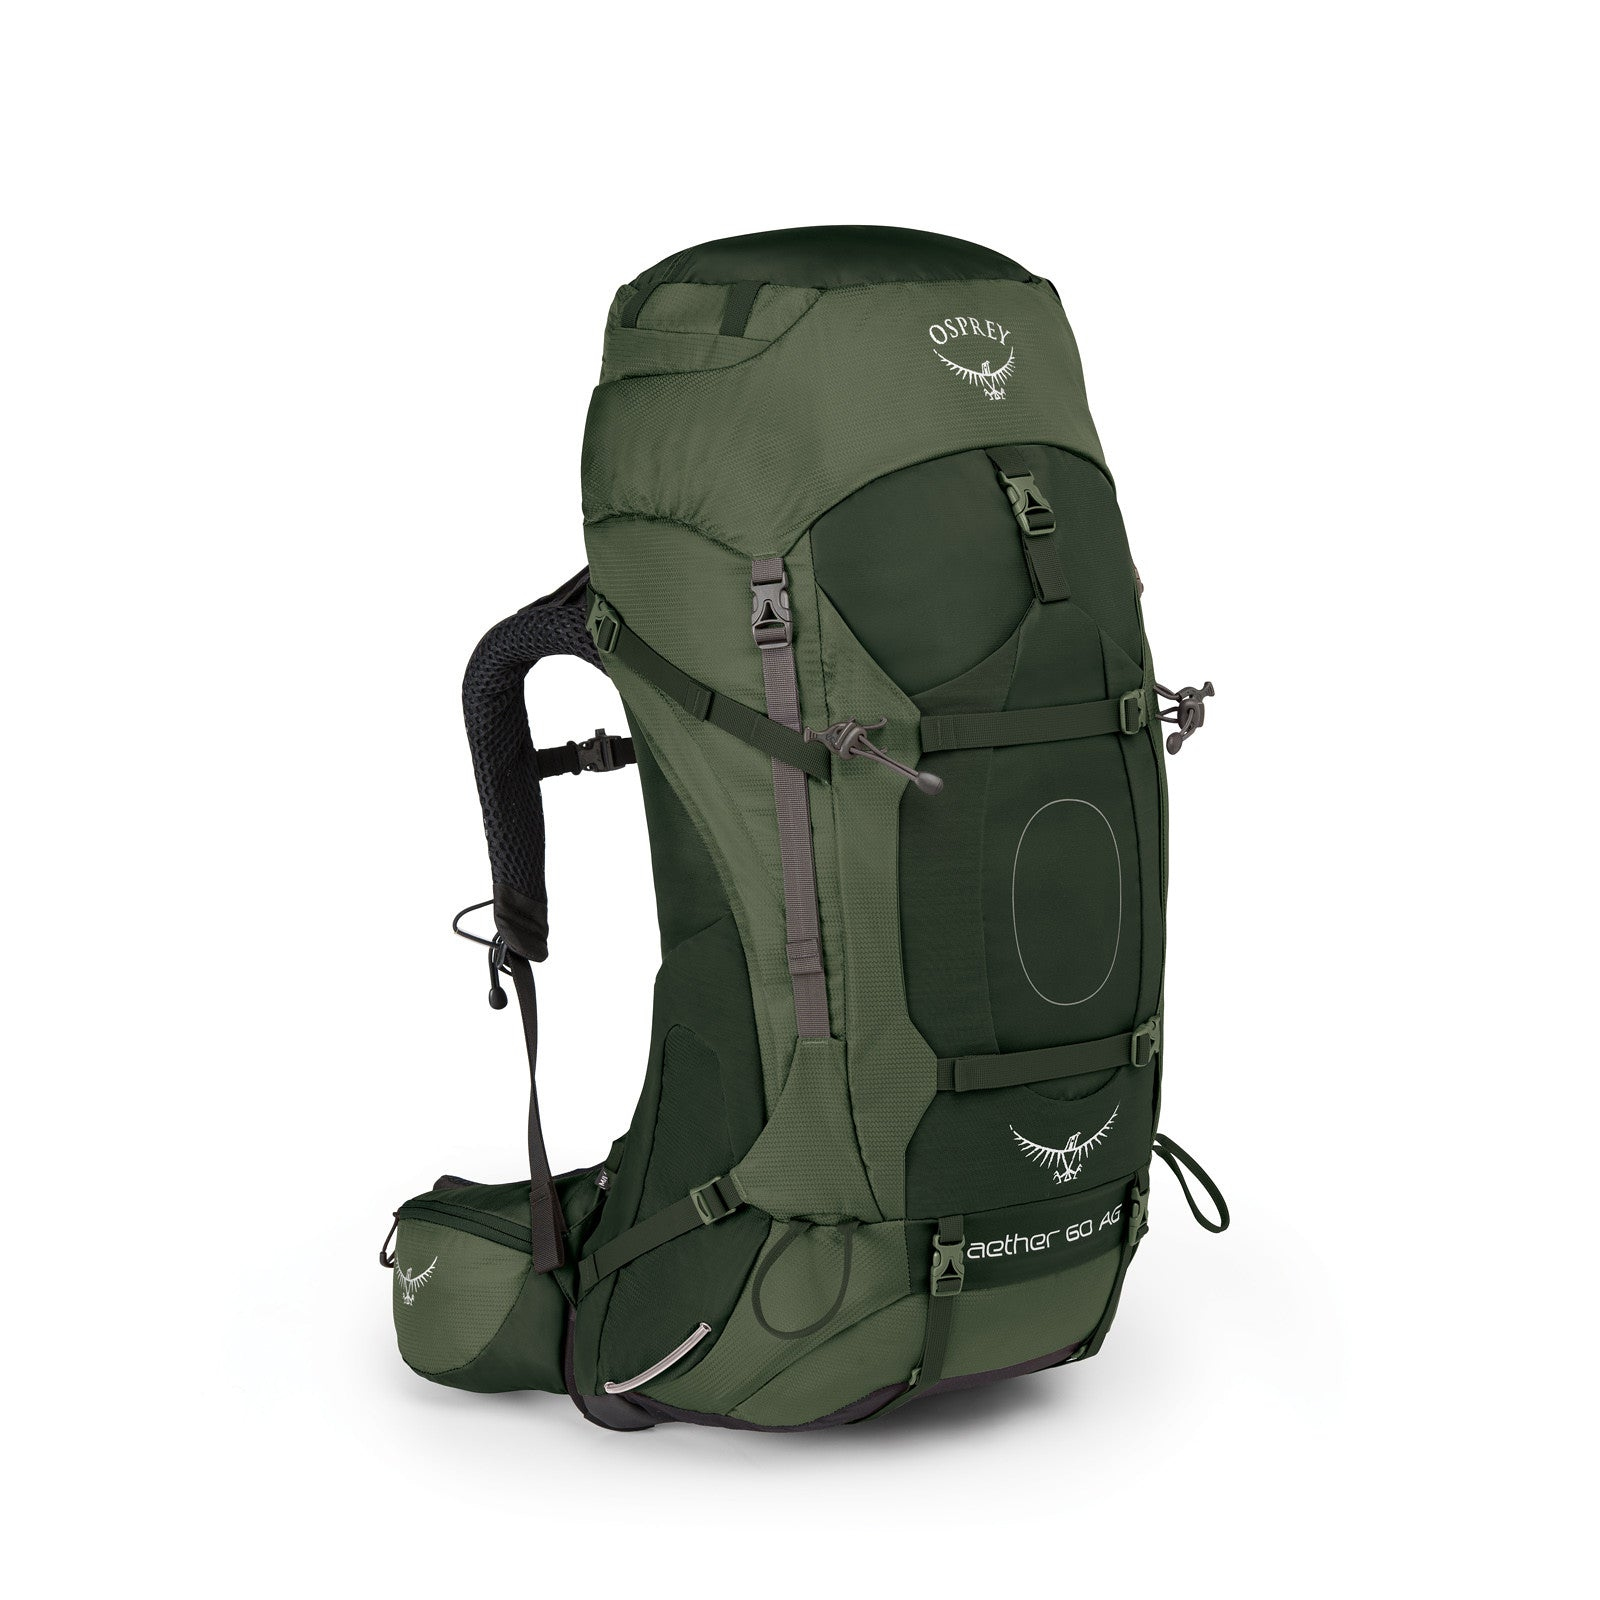 Osprey Aether 60 Men's Backpack